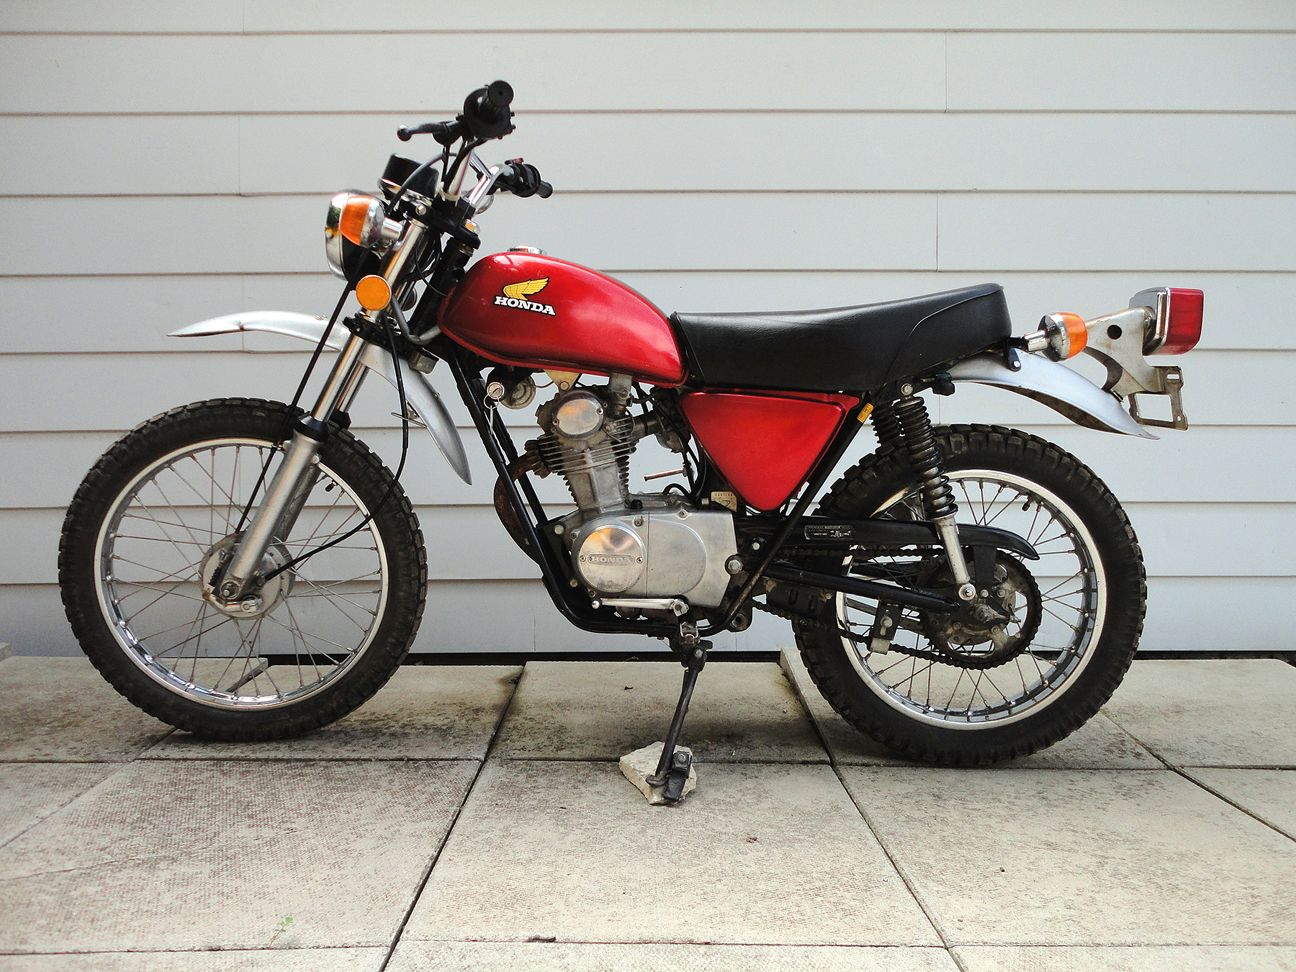 1974 honda xl100 a reiteration of the honda sl100 great all around lightweight enduro. Black Bedroom Furniture Sets. Home Design Ideas